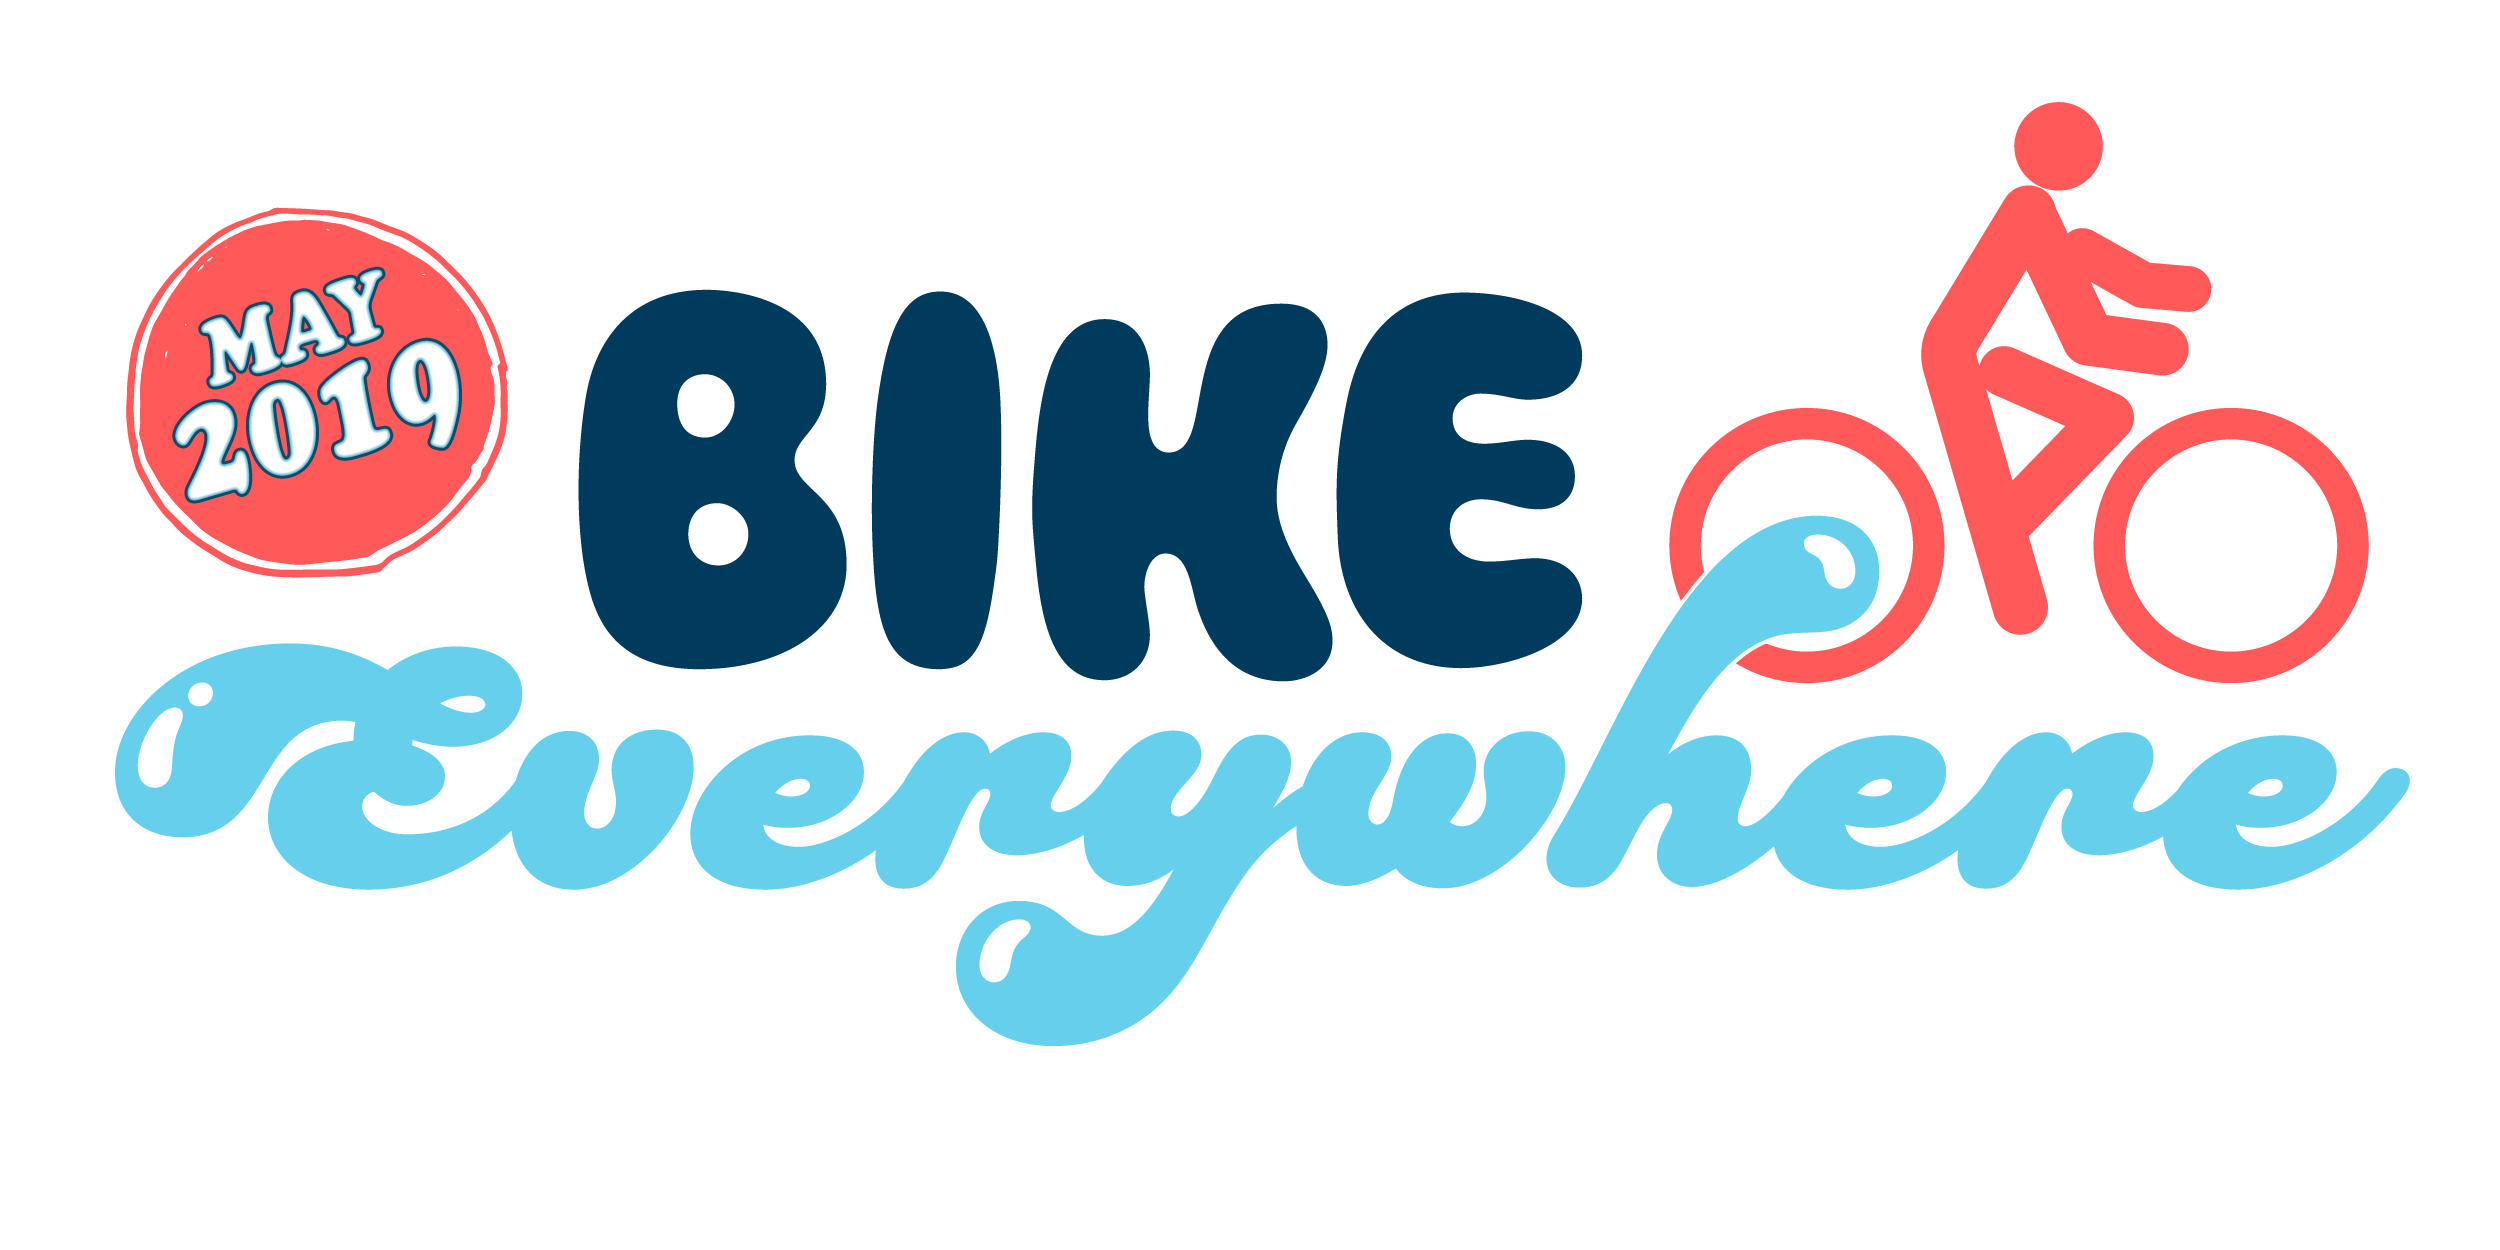 I Want to Ride My Bicycle - Commuting tips for bike month